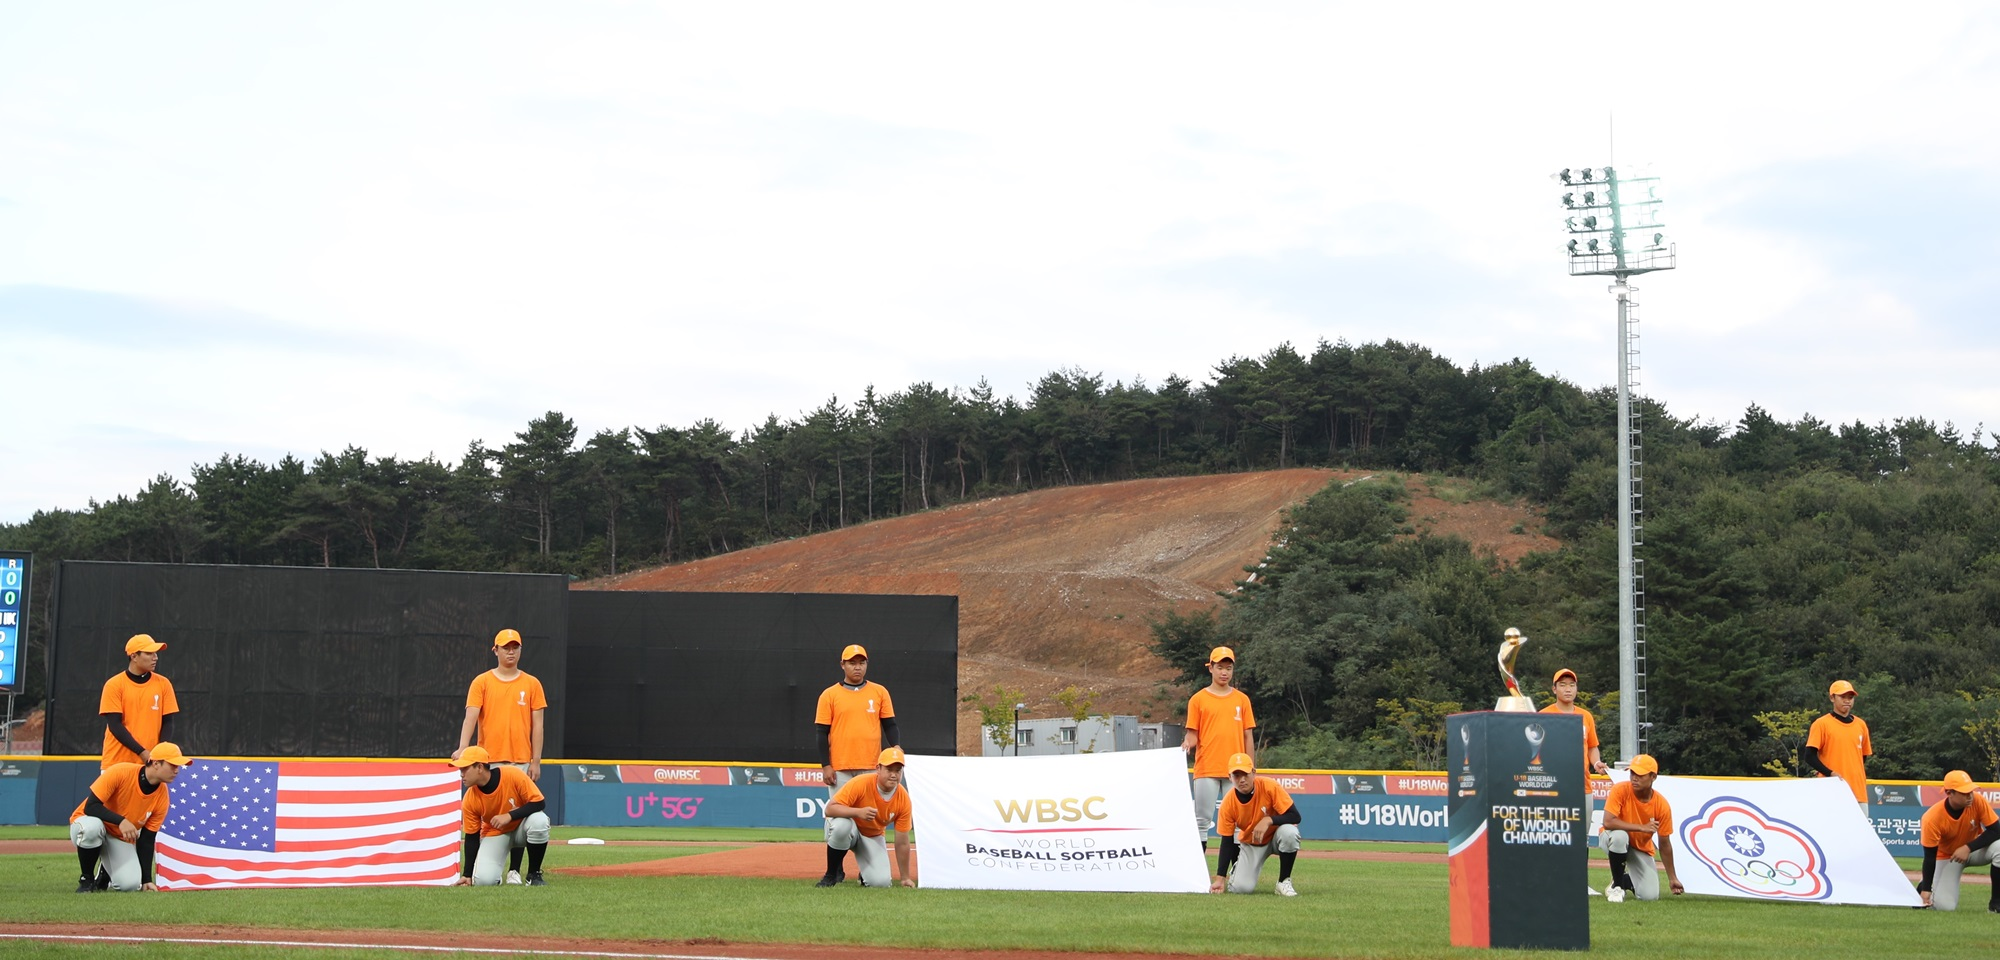 The U-18 Baseball World Cup final began in a beautiful day in Gijang